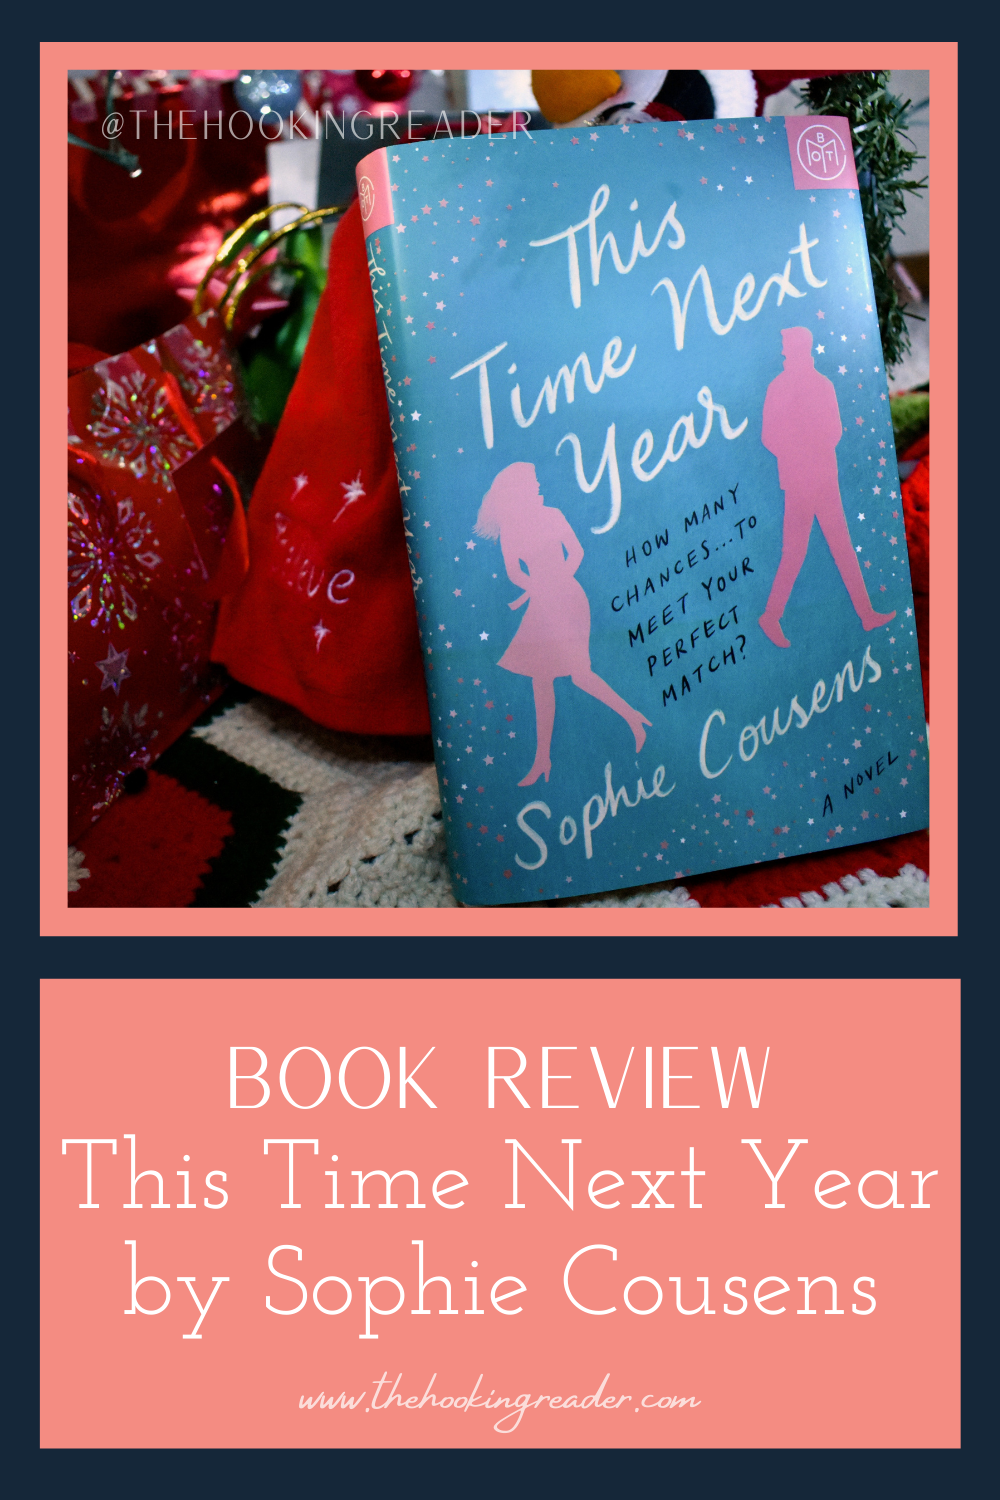 Book Review: This Time Next Year by Sophie Cousens